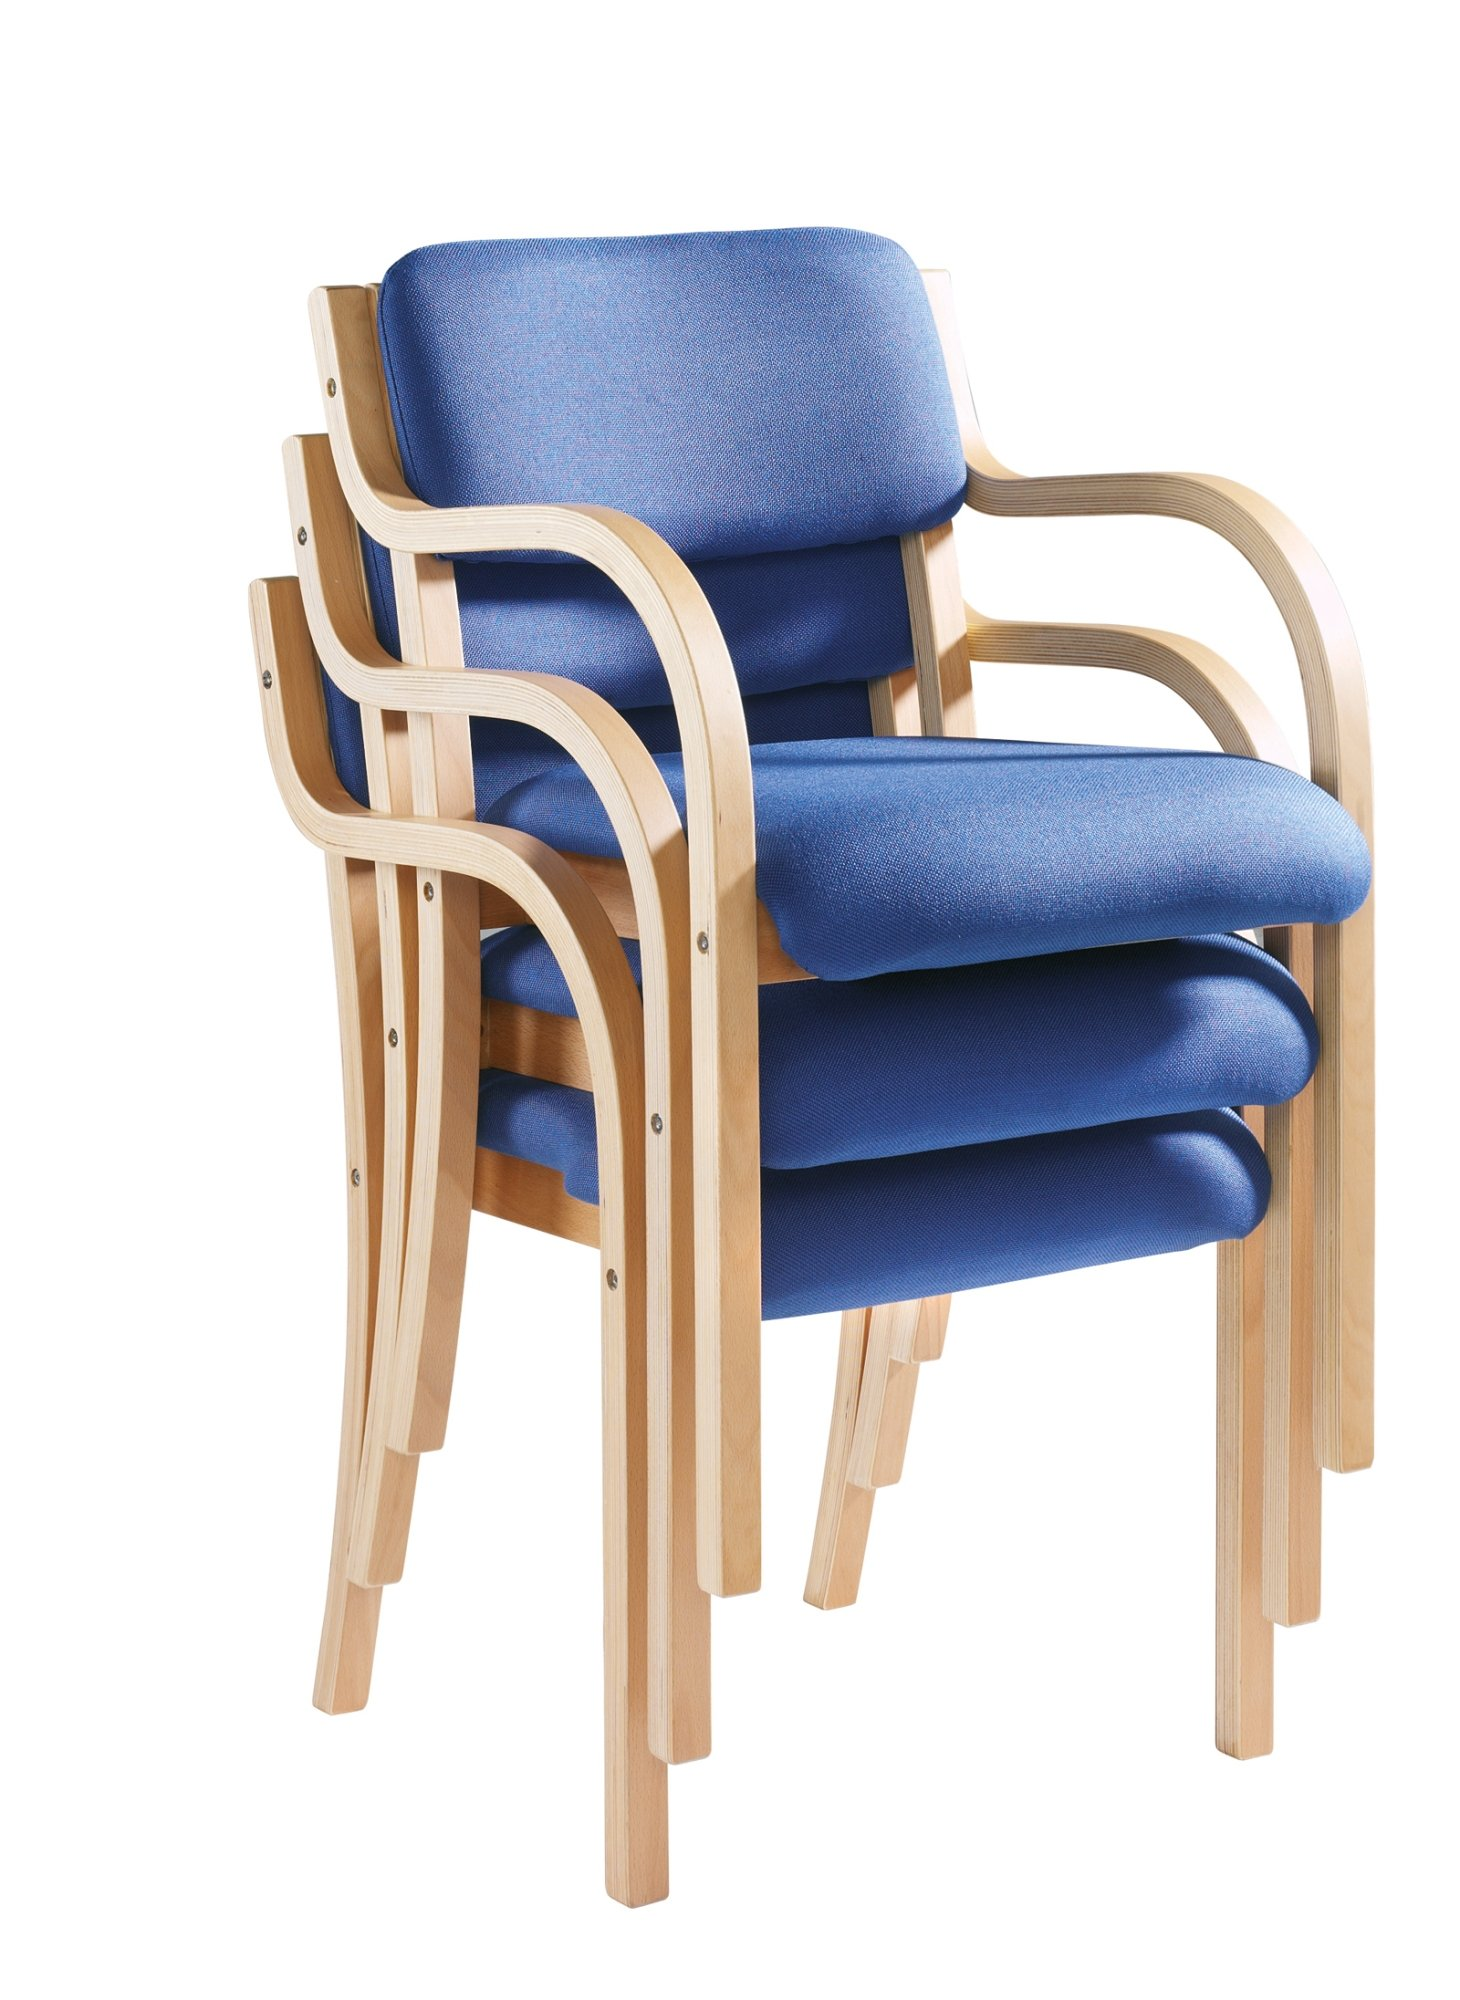 wooden chair frames for upholstery uk modern high chairs babies prague confence with arms